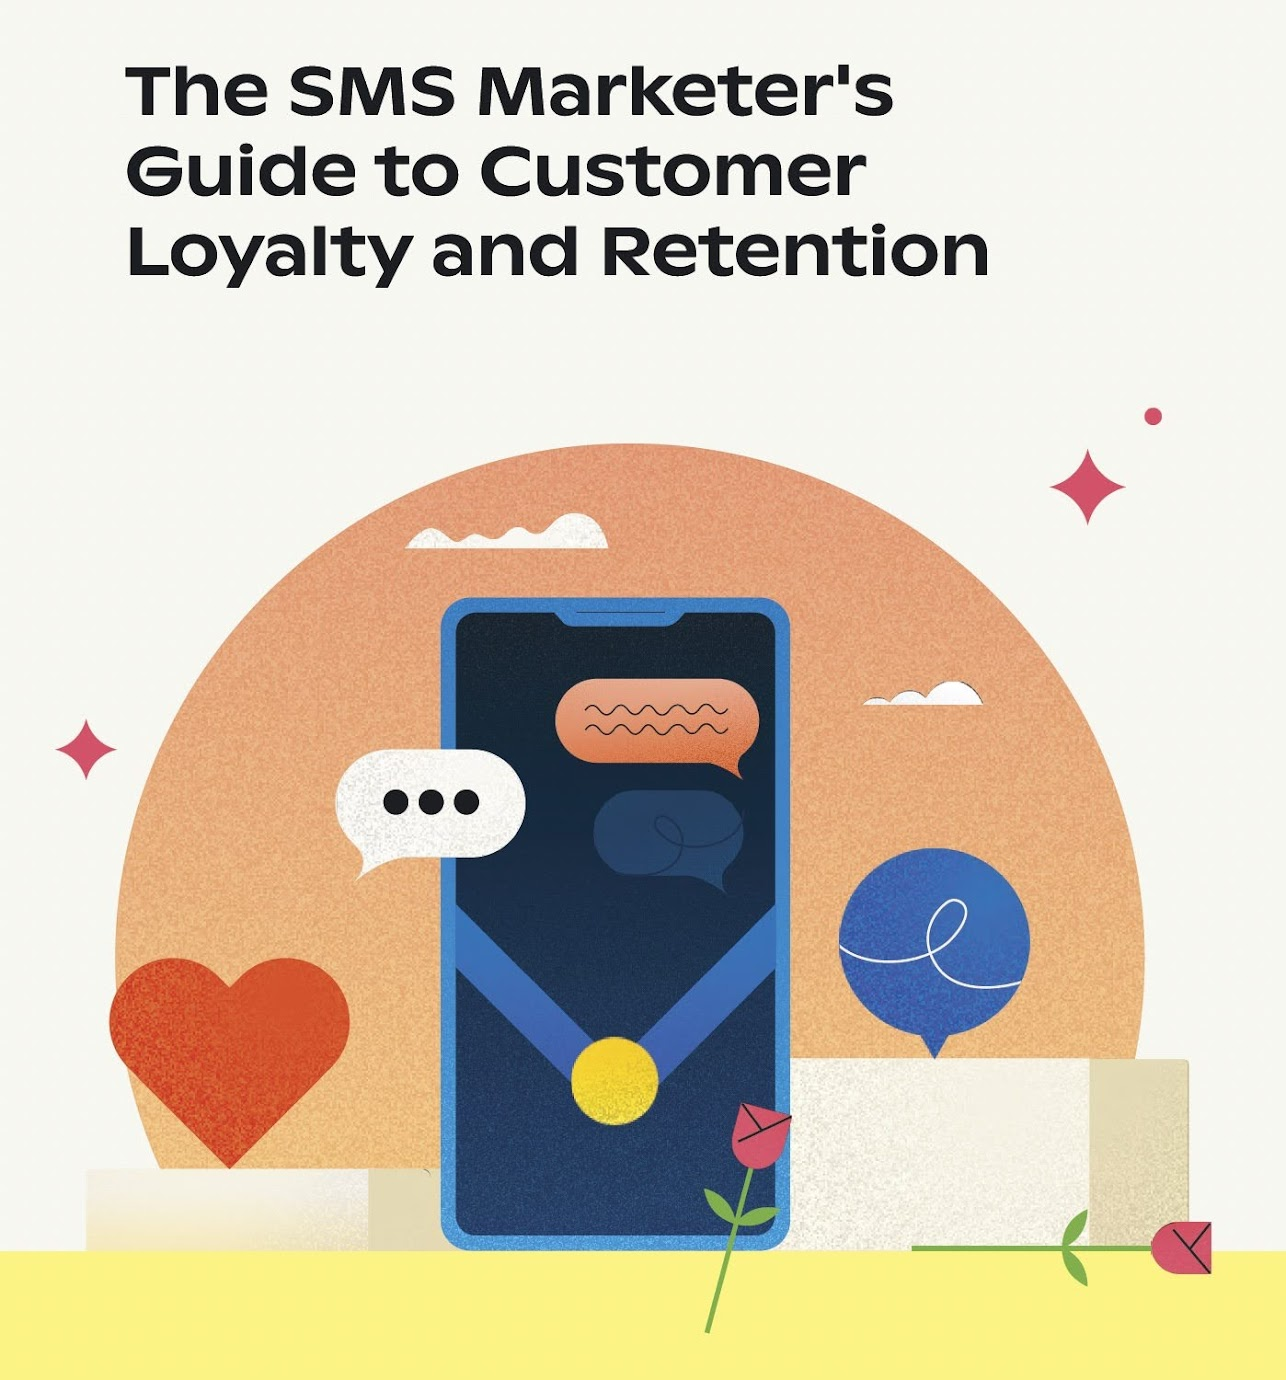 The SMS Marketer's Guide to Customer Loyalty and Retention